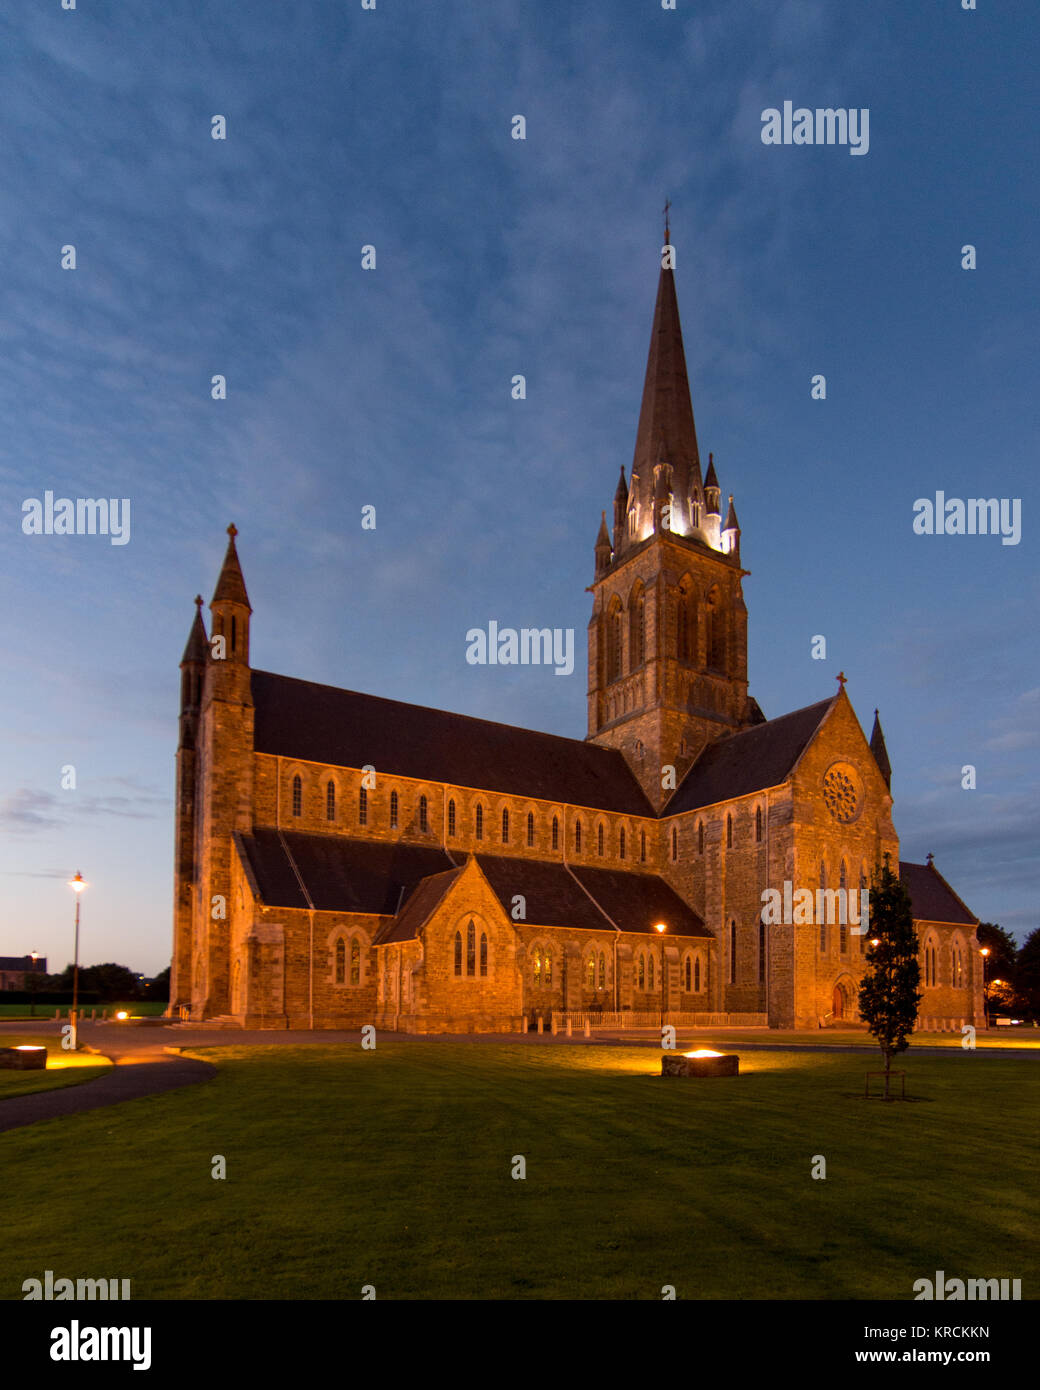 St Mary's Cathedral, designed by architect Augustus Welby Pugin, in Killarney in Ireland's County Kerry. - Stock Image